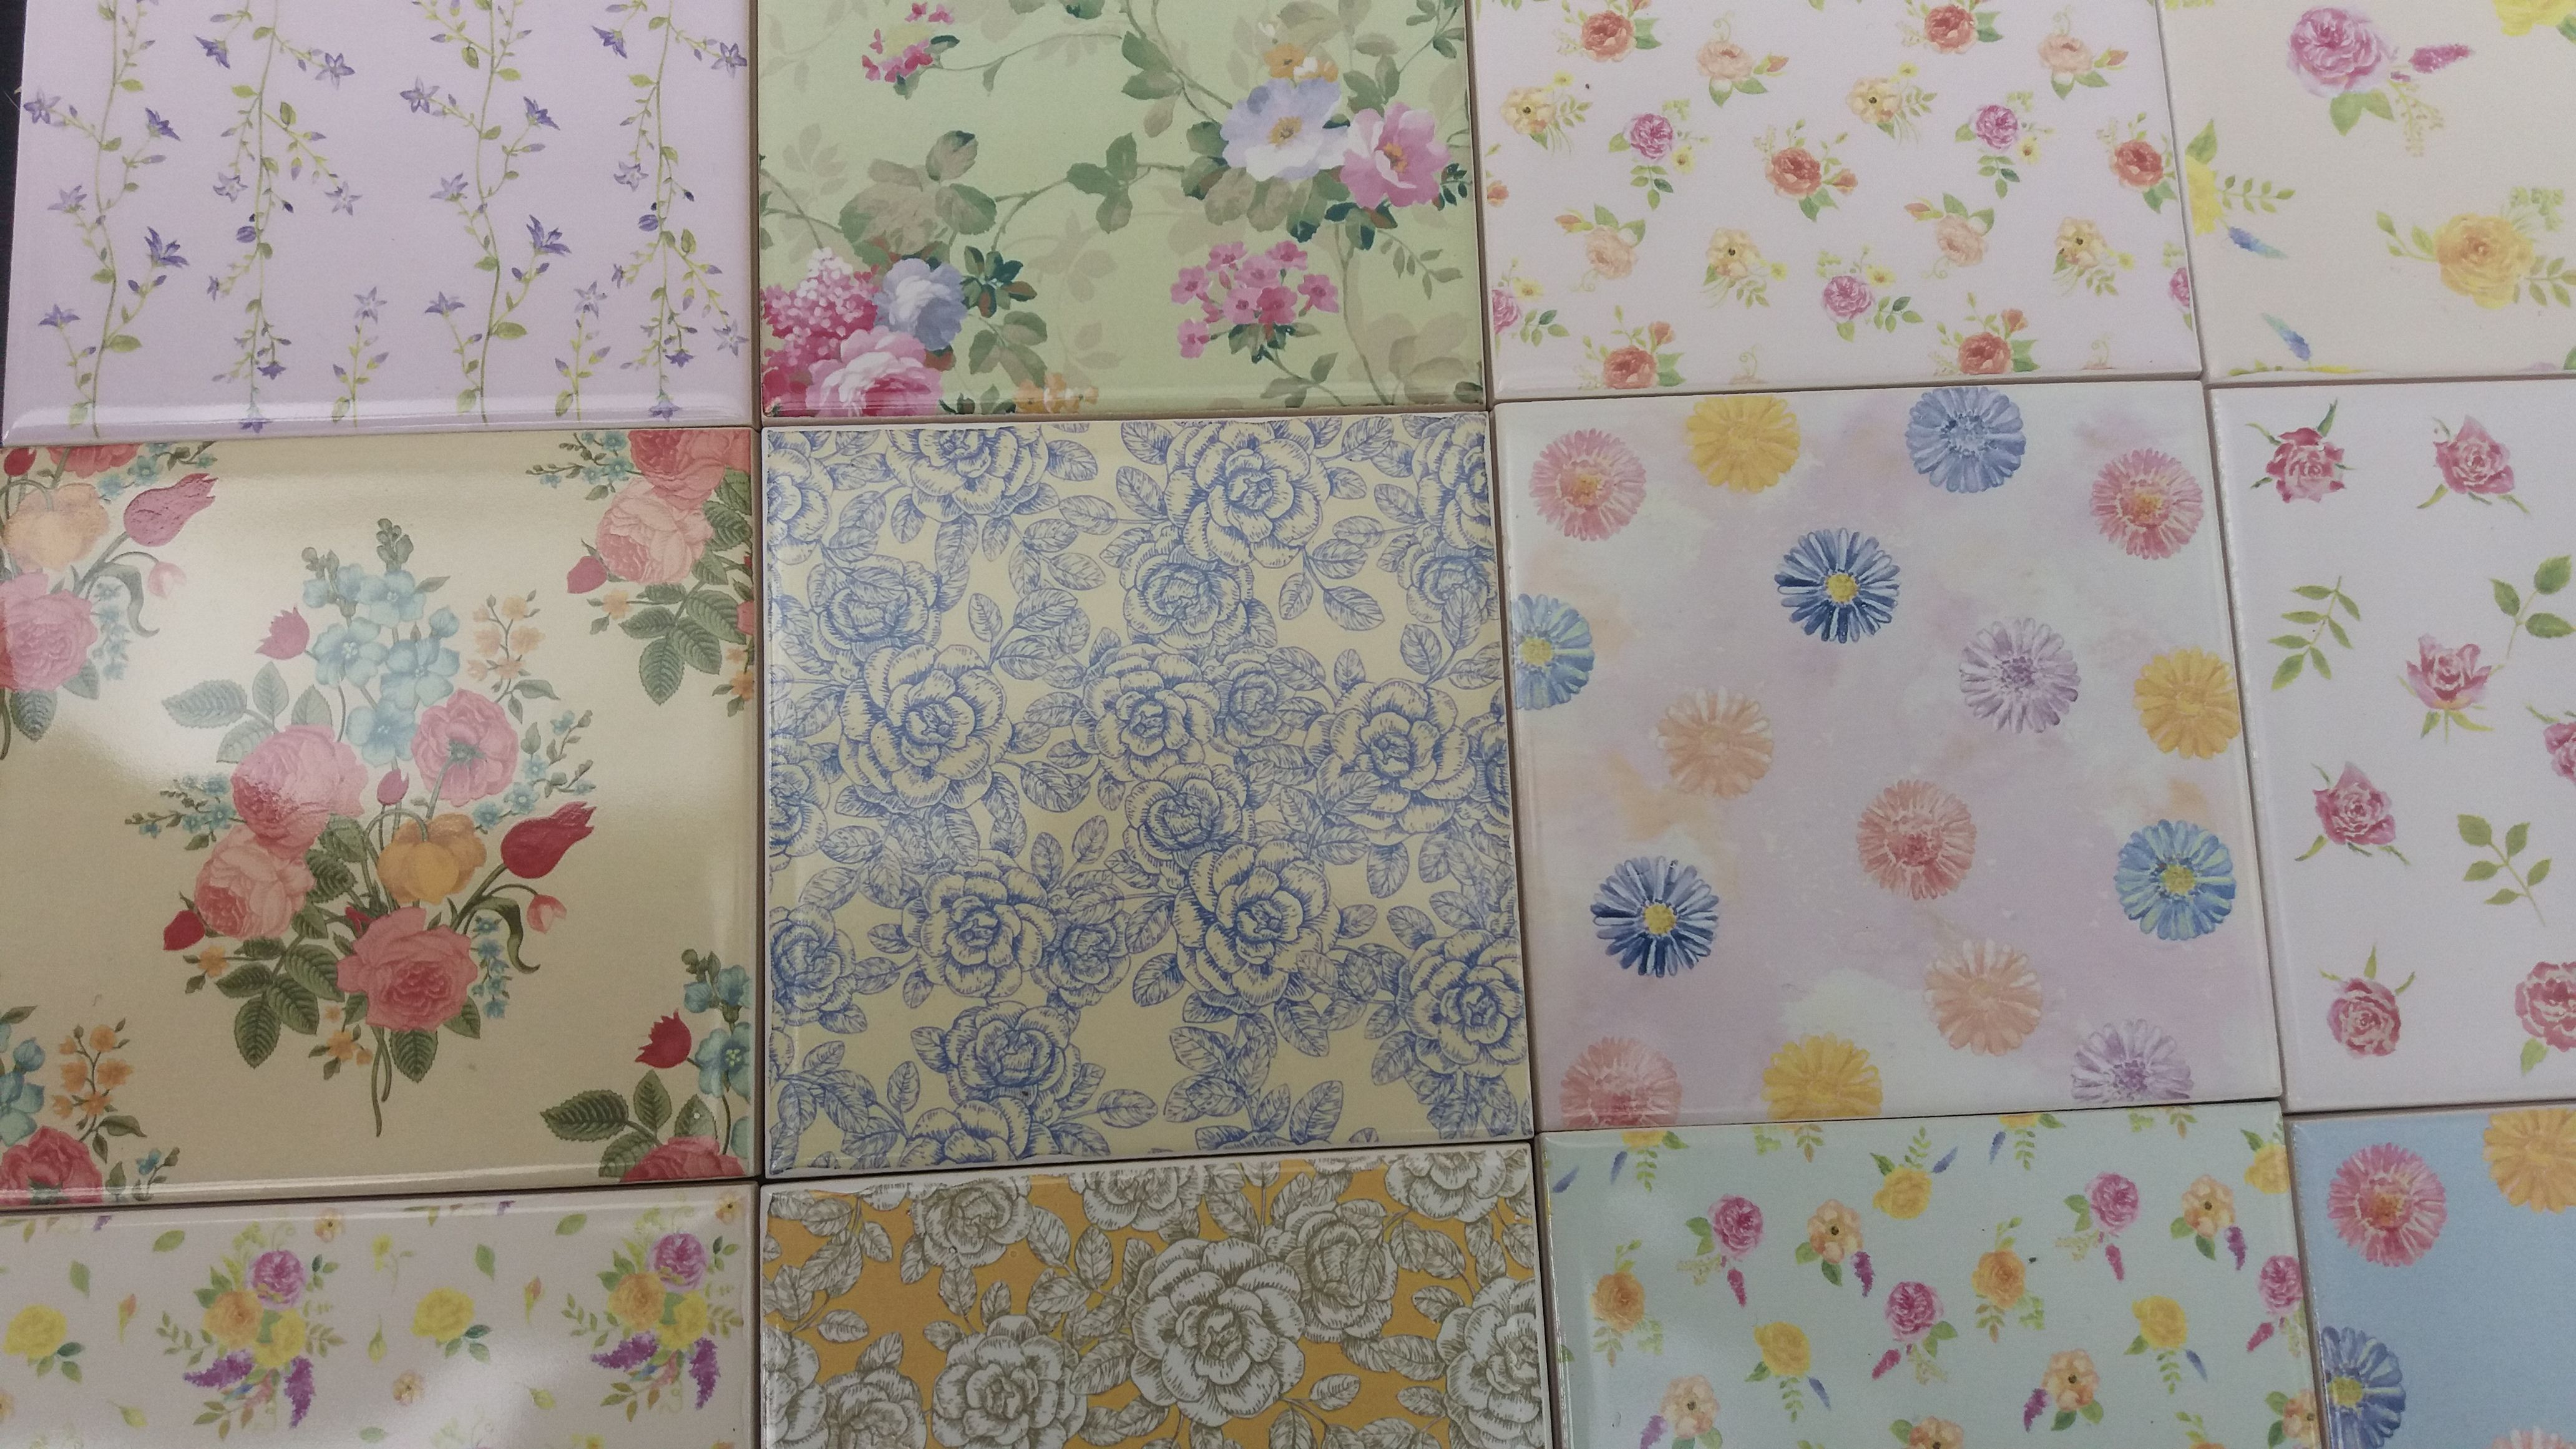 Ceramic wall tiles in floral patterns. Floral pattern